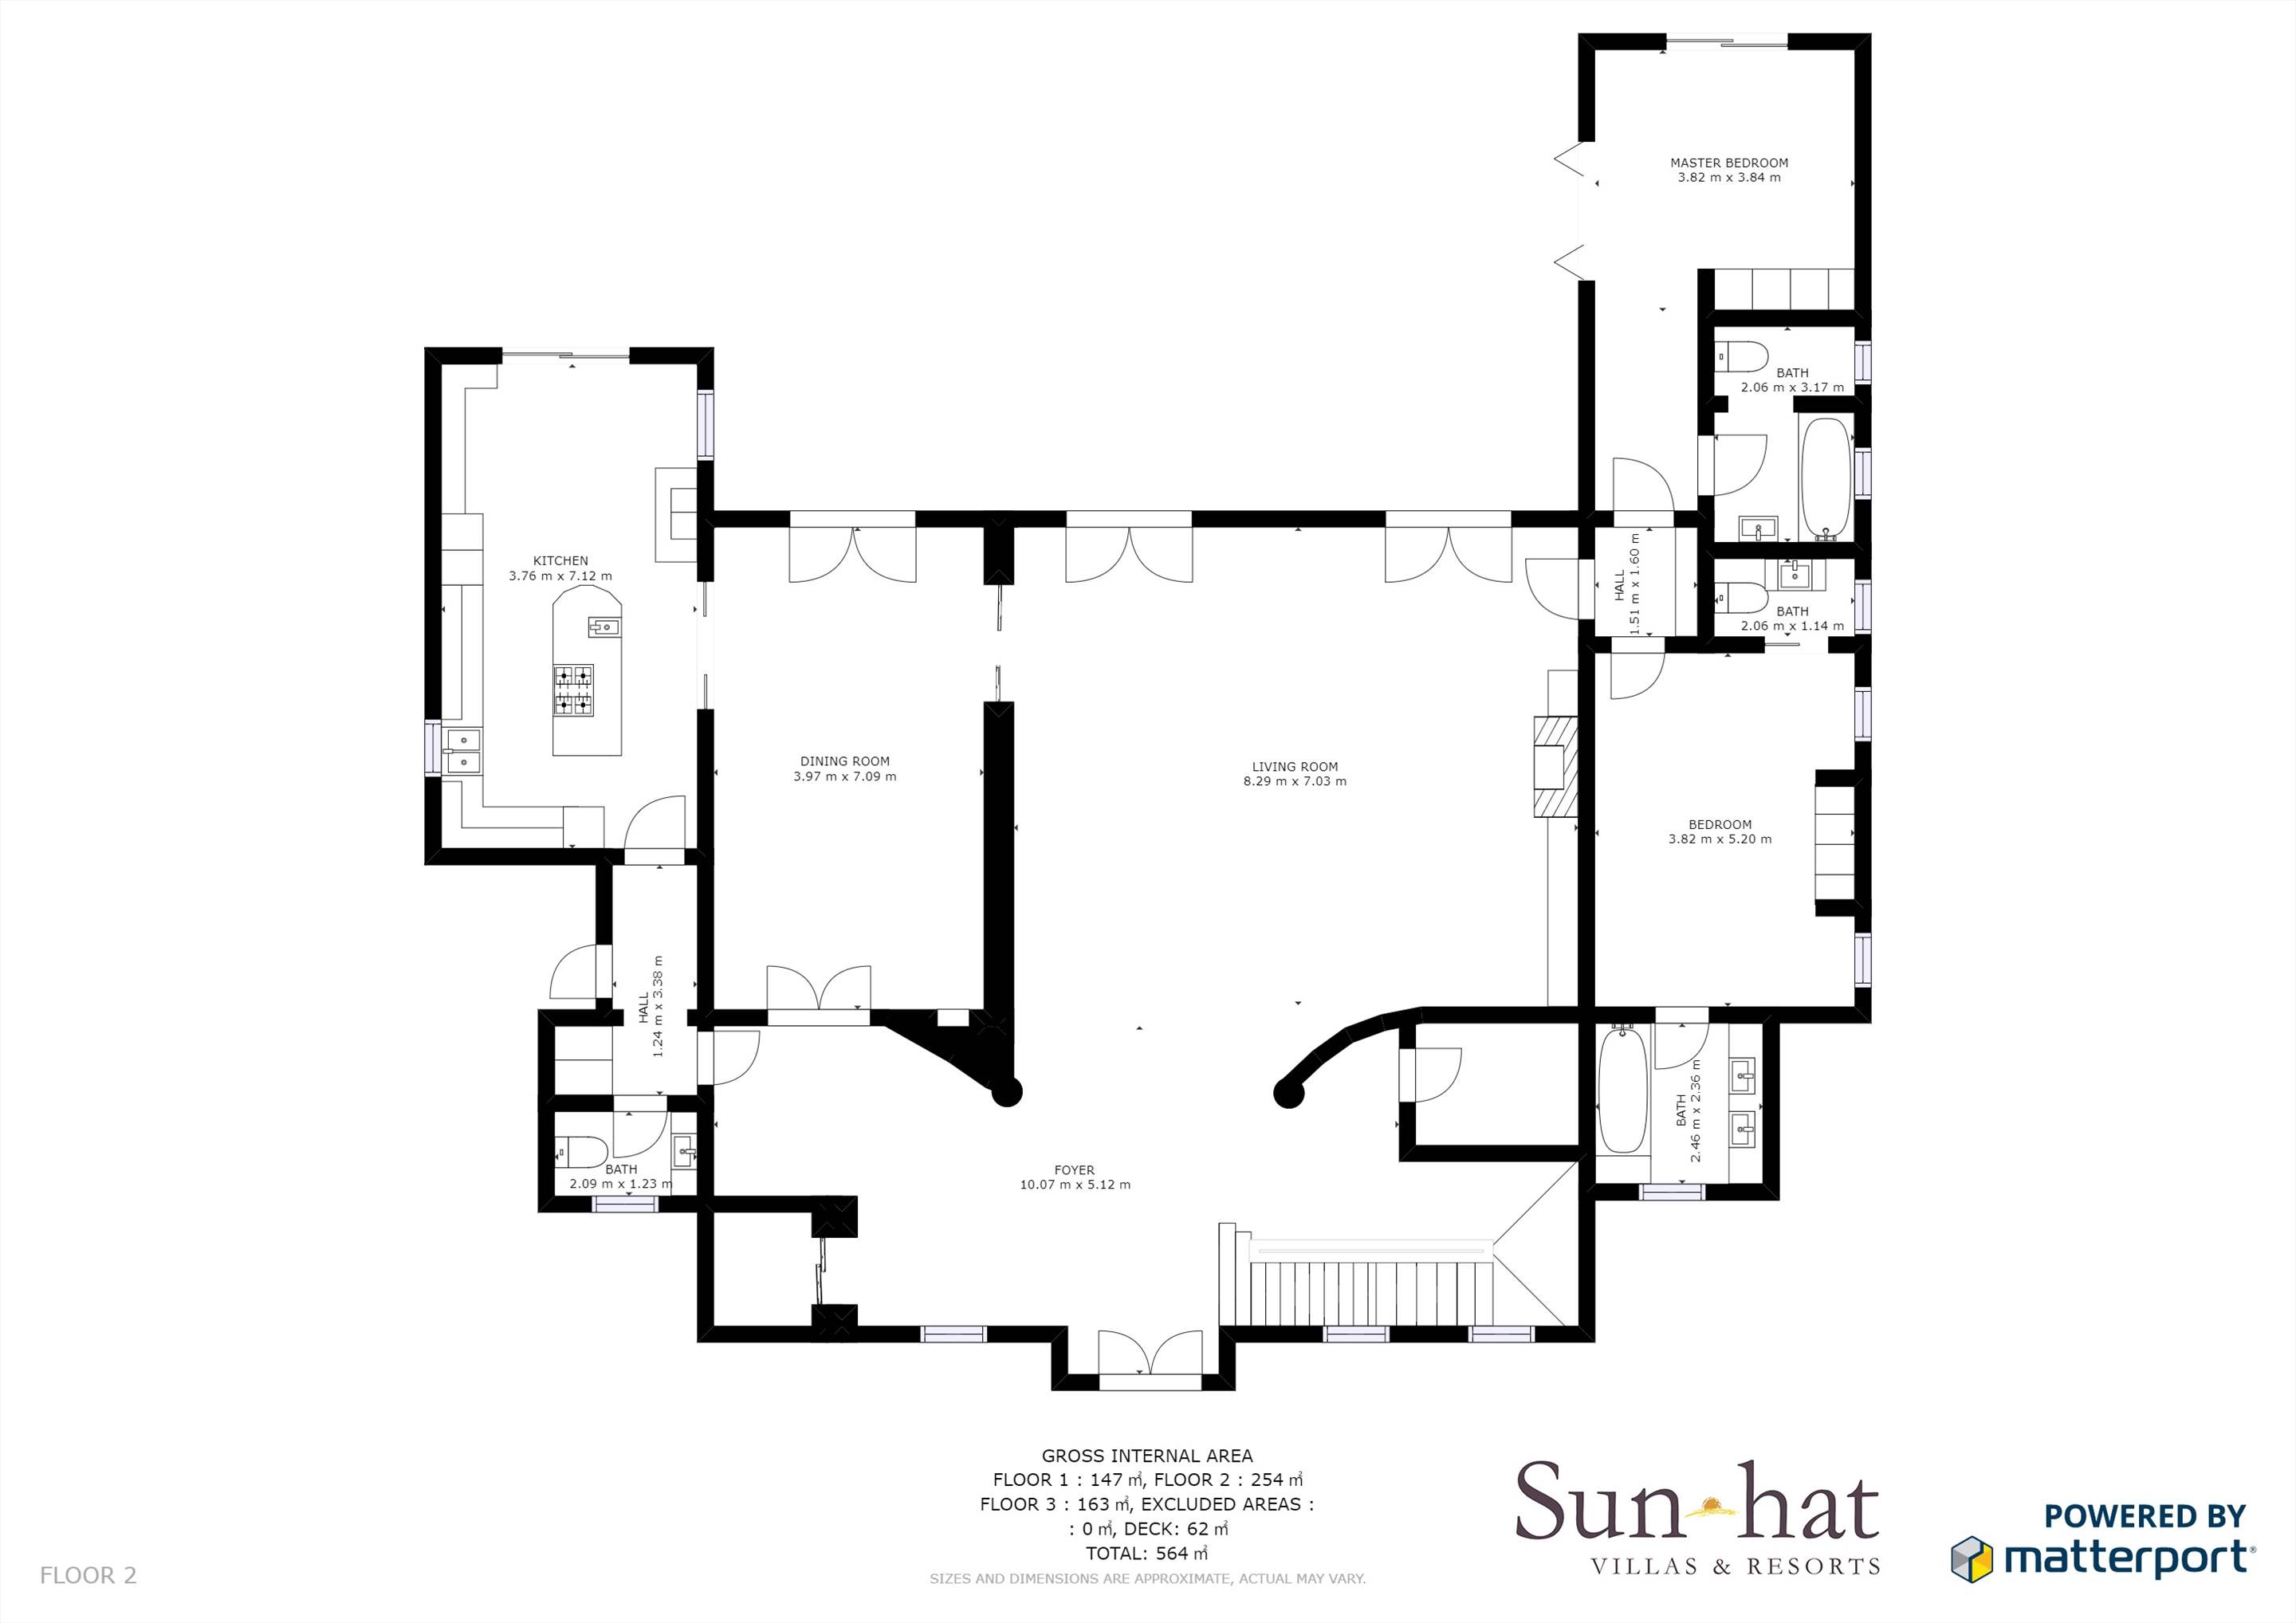 Villa Lantana 2, Main house & Annexe, 6 bedrooms Floorplan #2